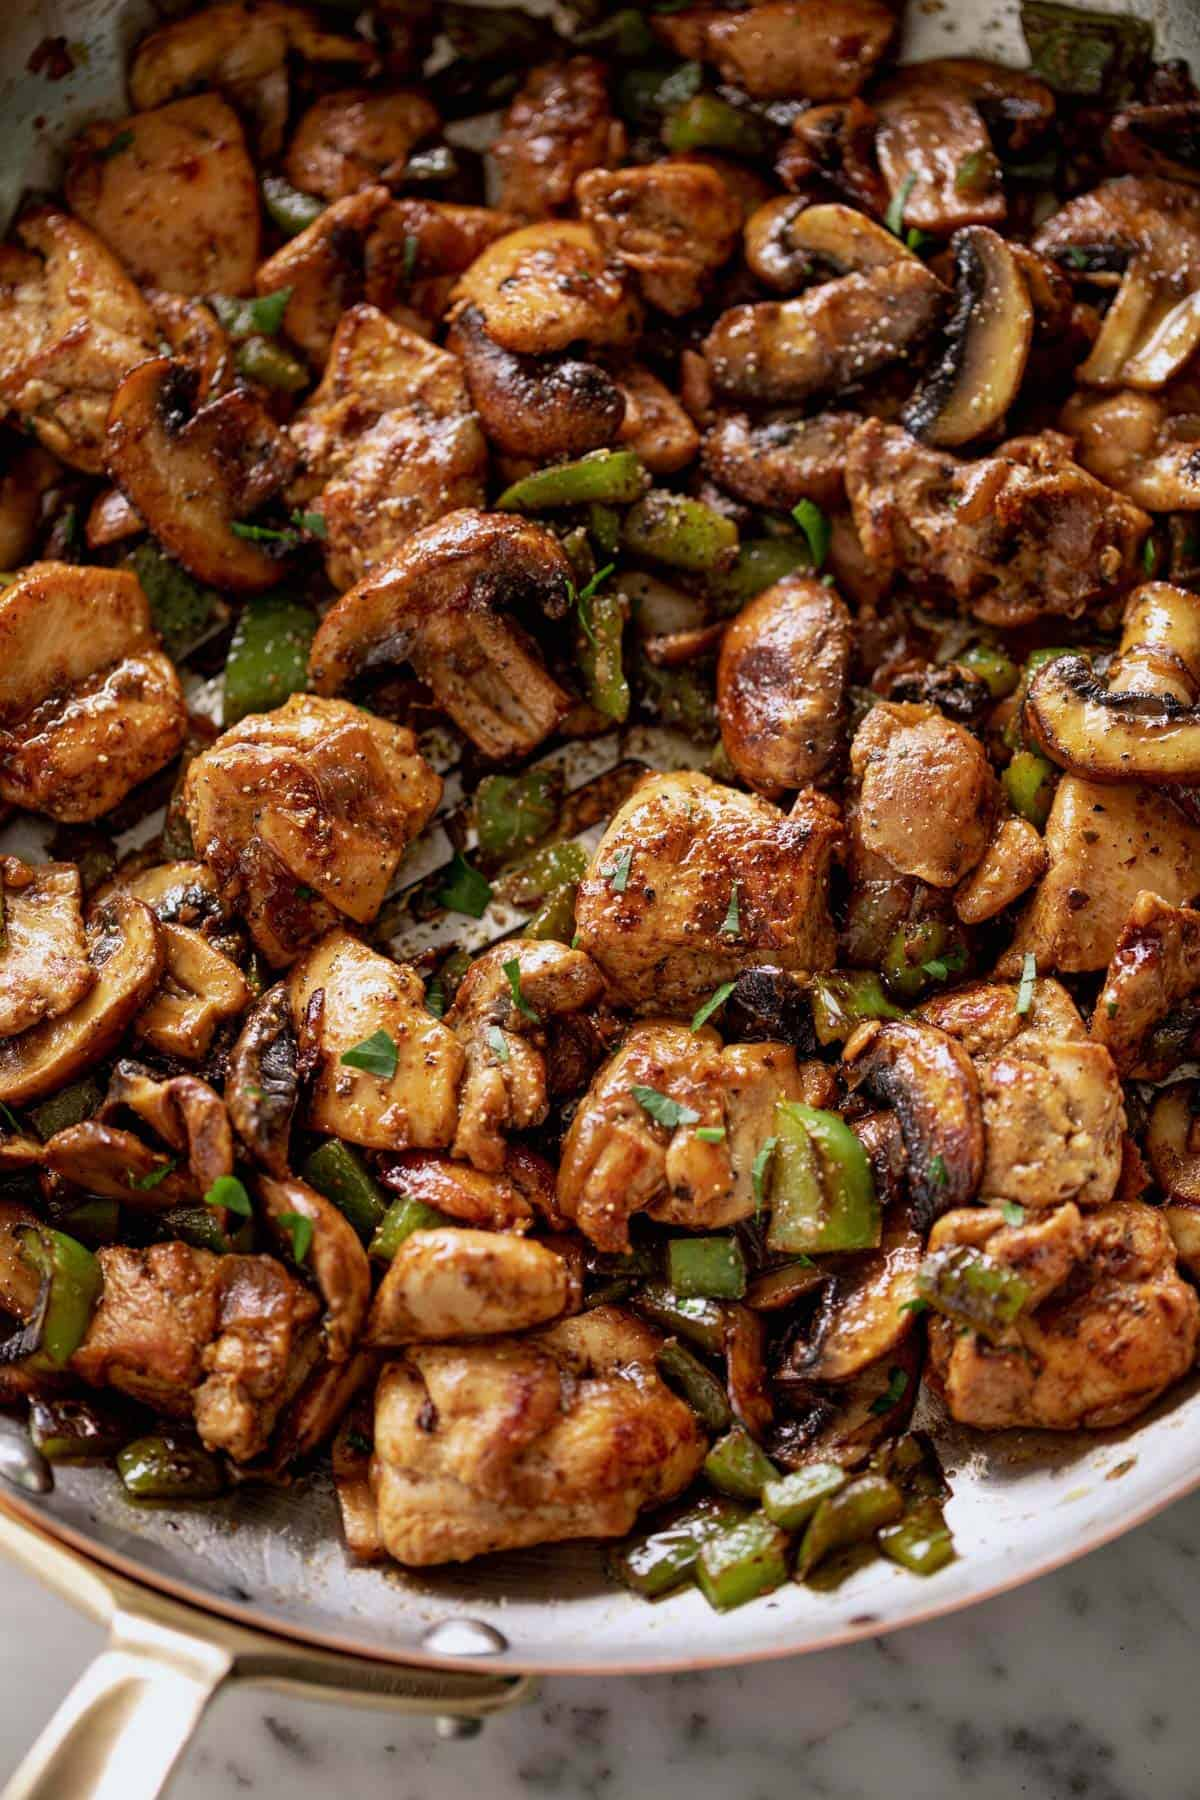 Garlic Mushroom Chicken Bites cook in no time at all! An easy dinner recipe cooked in a silver pan or skillet with a wooden spoon.   cafedelites.com